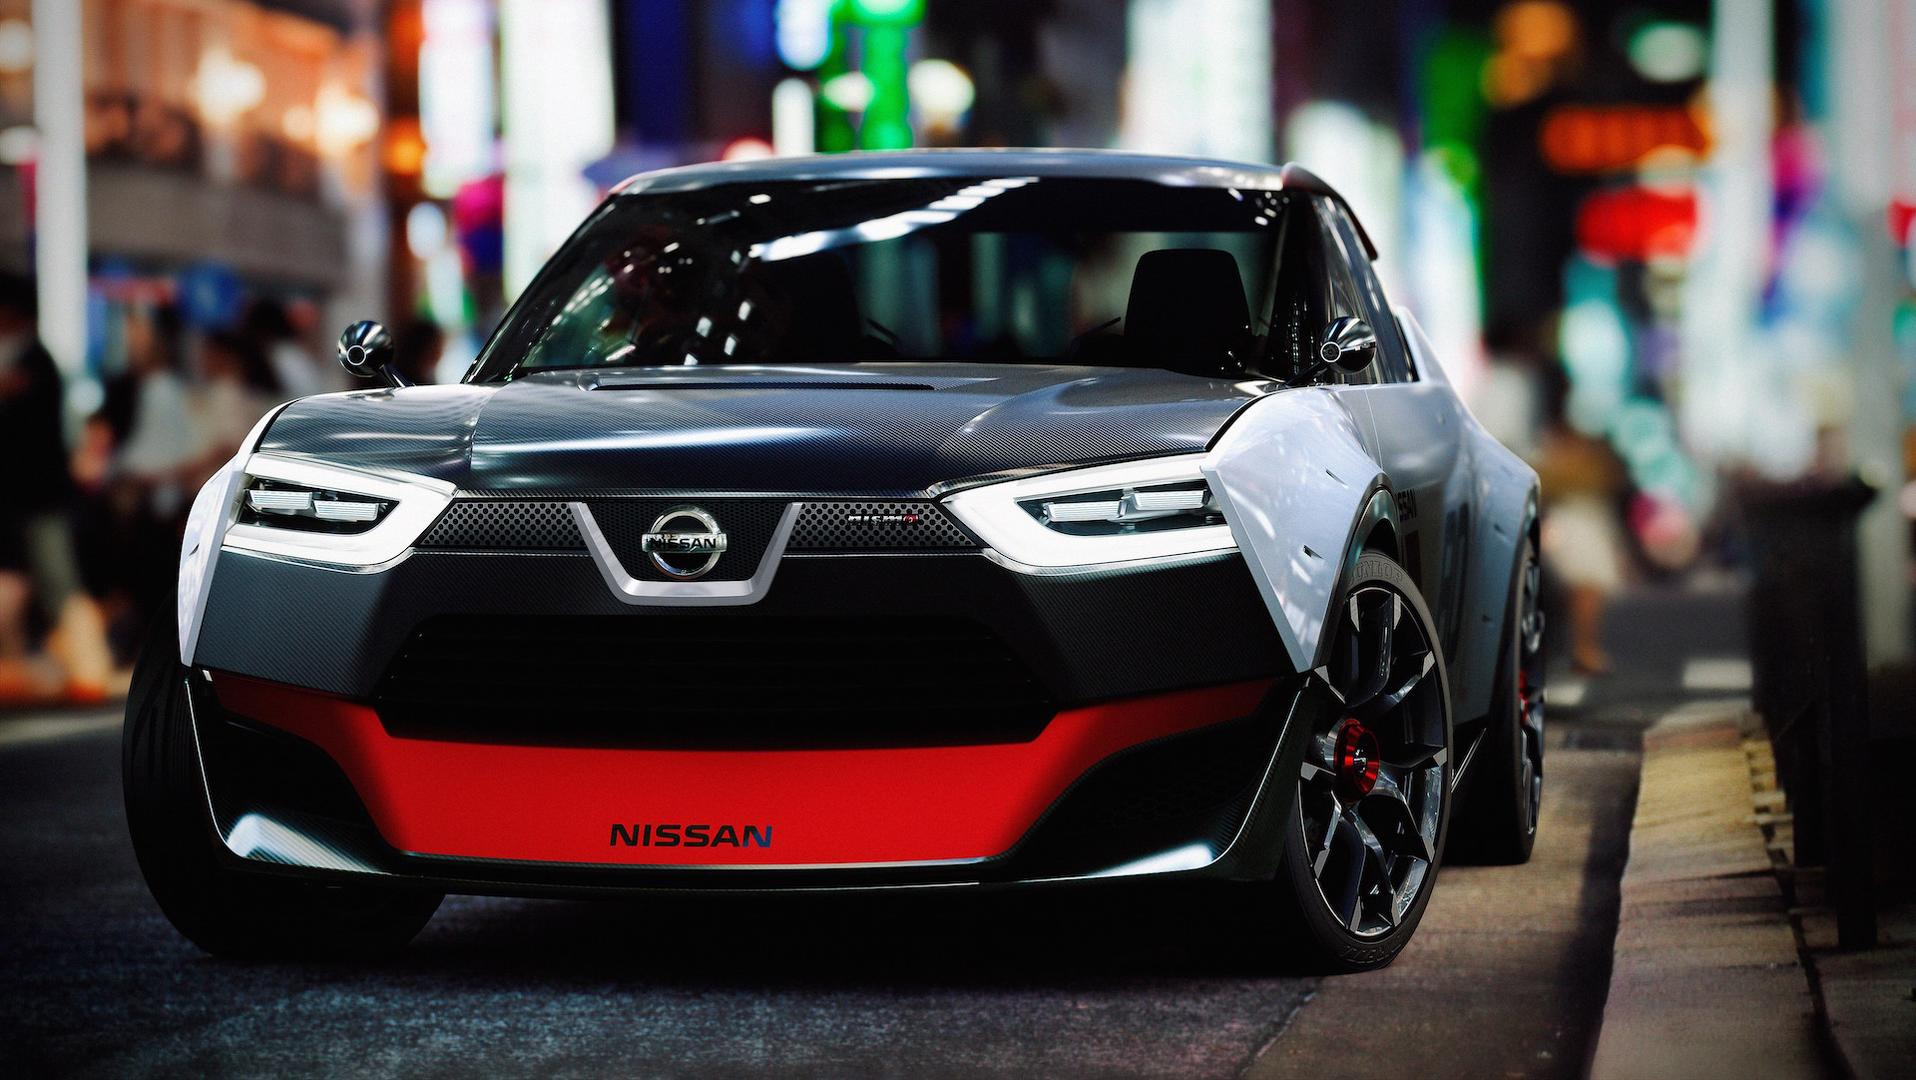 Could Nissan S New Imx Trademark Hint At A Production Idx